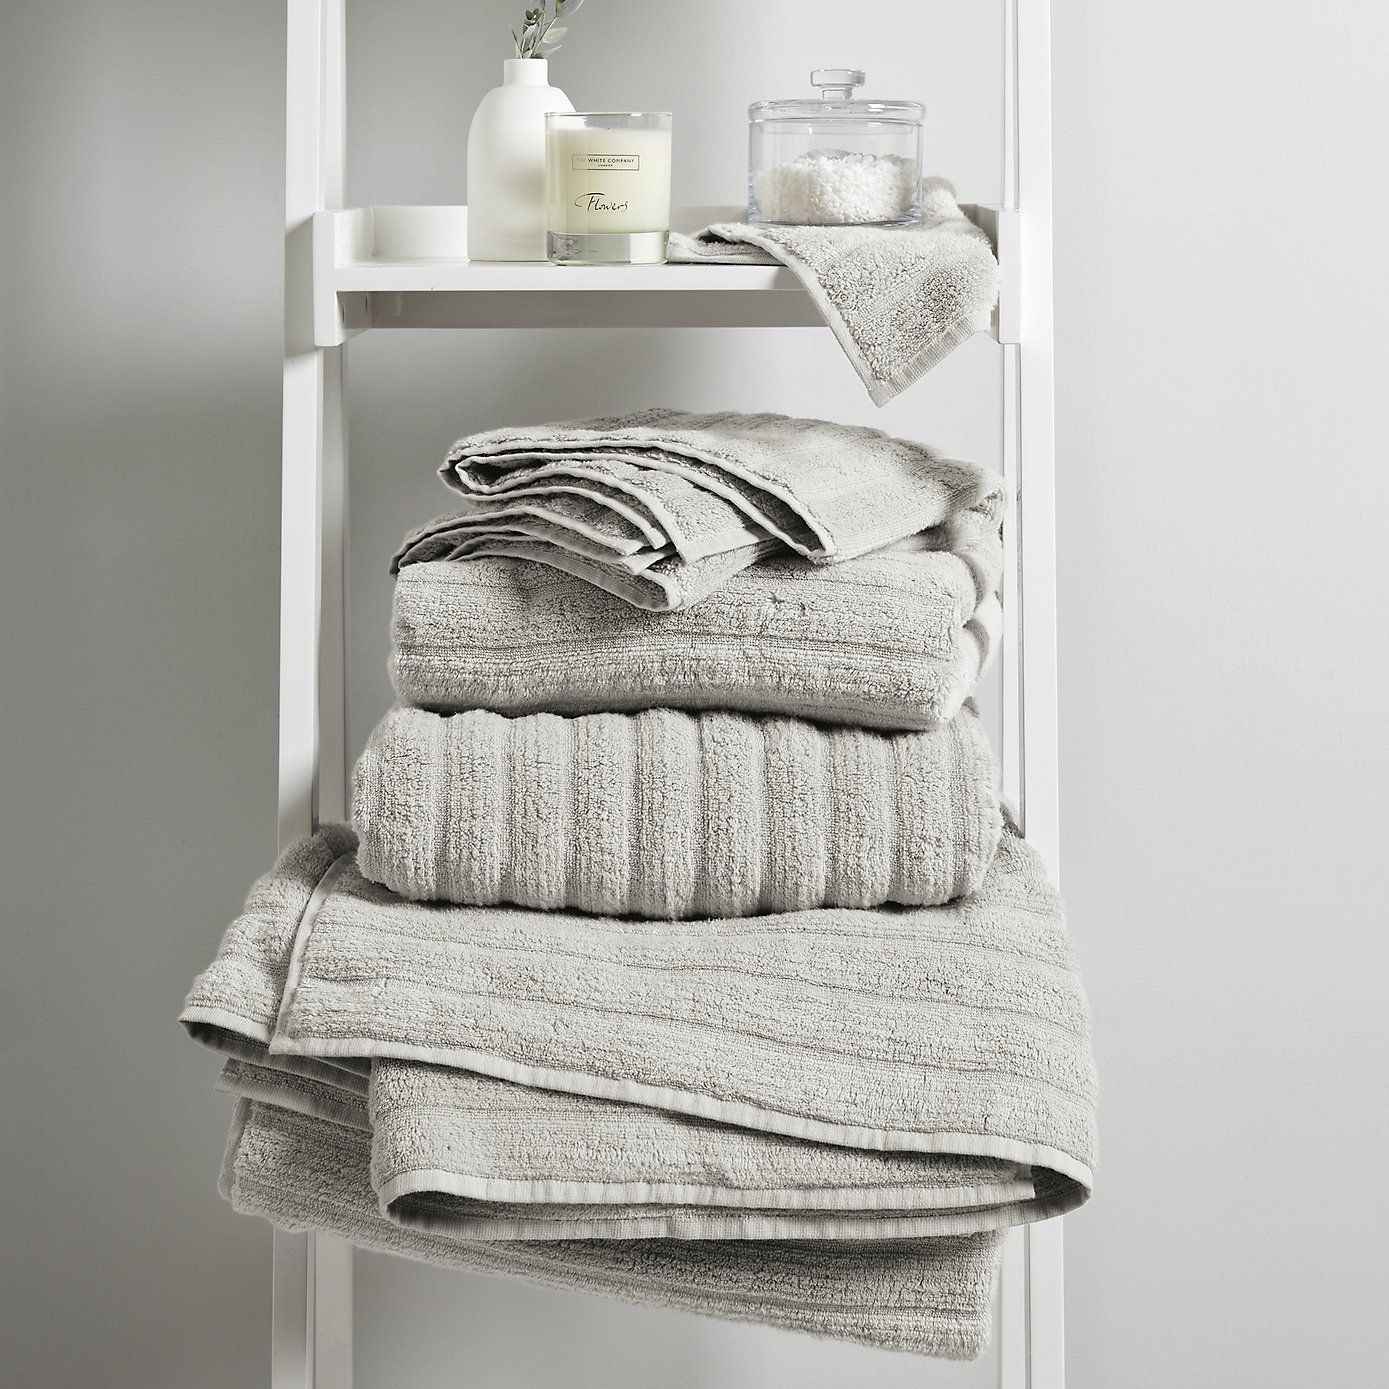 Hydrocotton Bath Towels Classy Hydrocotton Towels  White Company Towels And Bungalow Inspiration Design